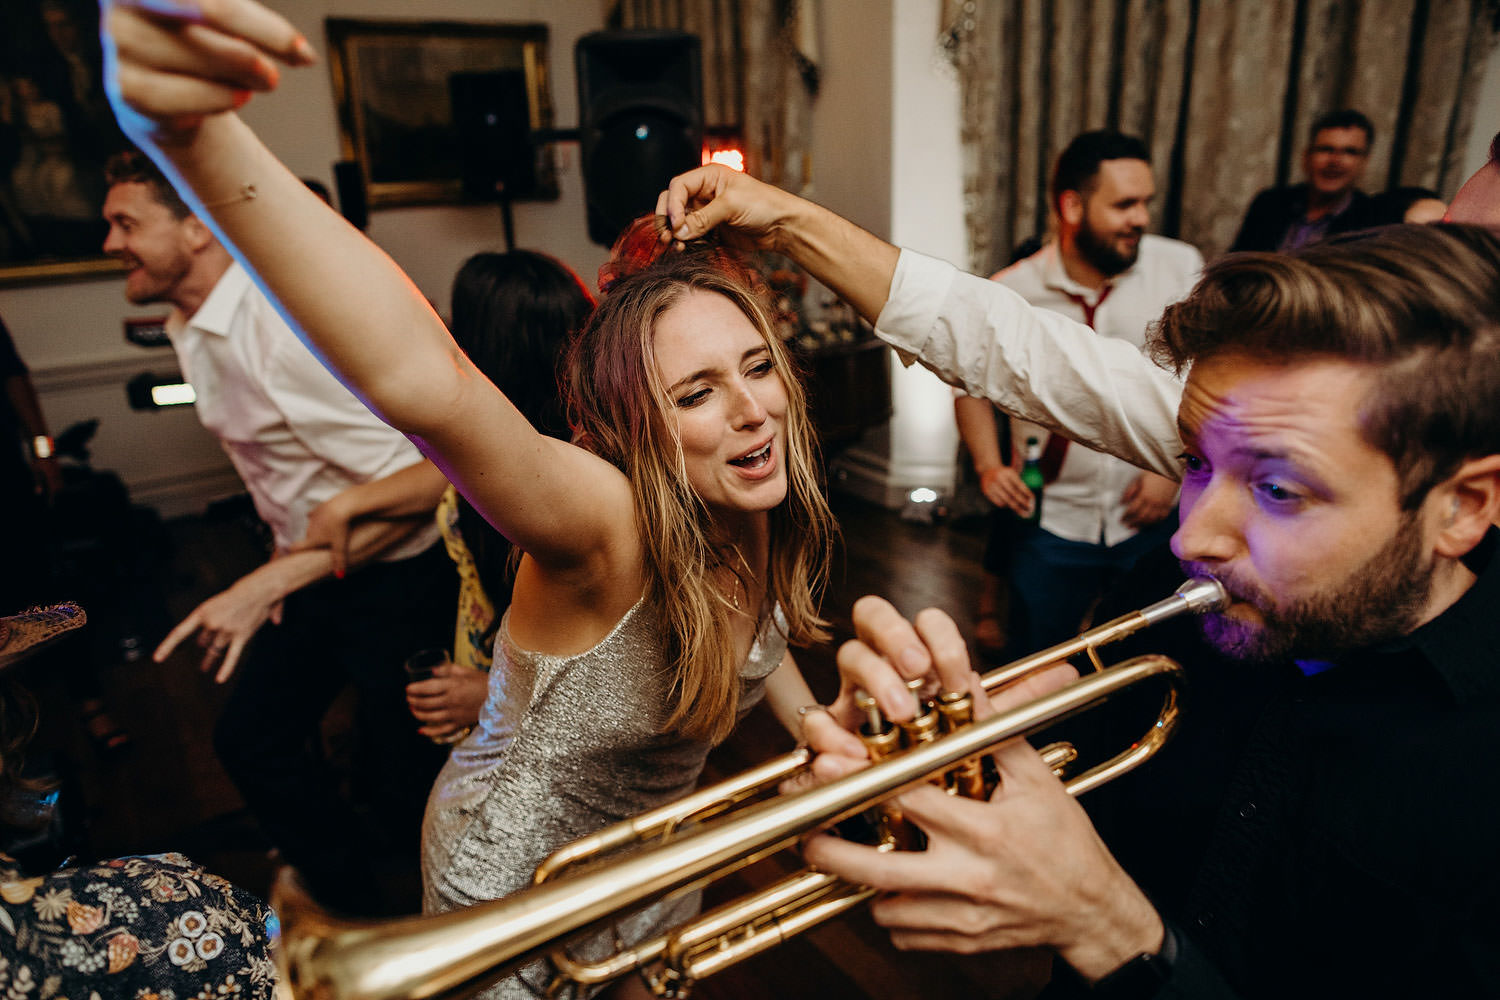 Brass band at wedding party